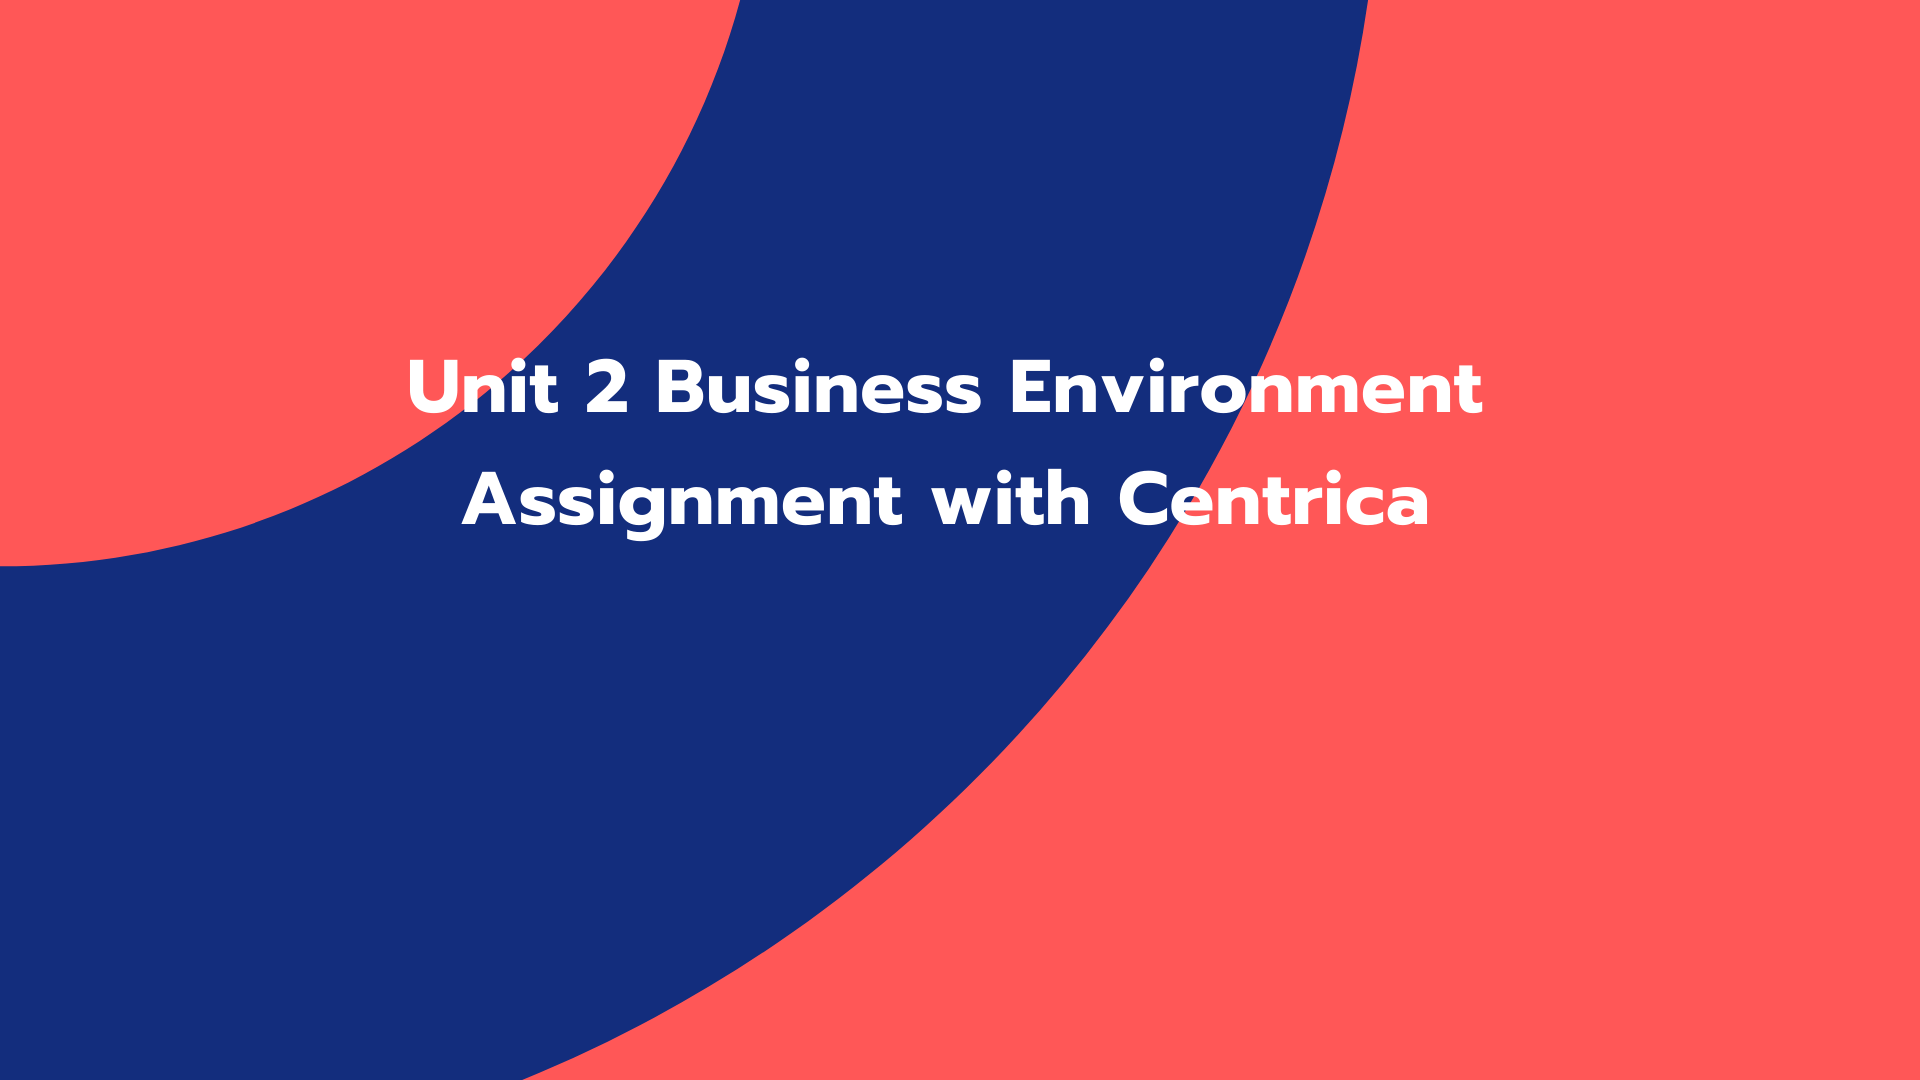 Unit 2 Business Environment Assignment with Centrica